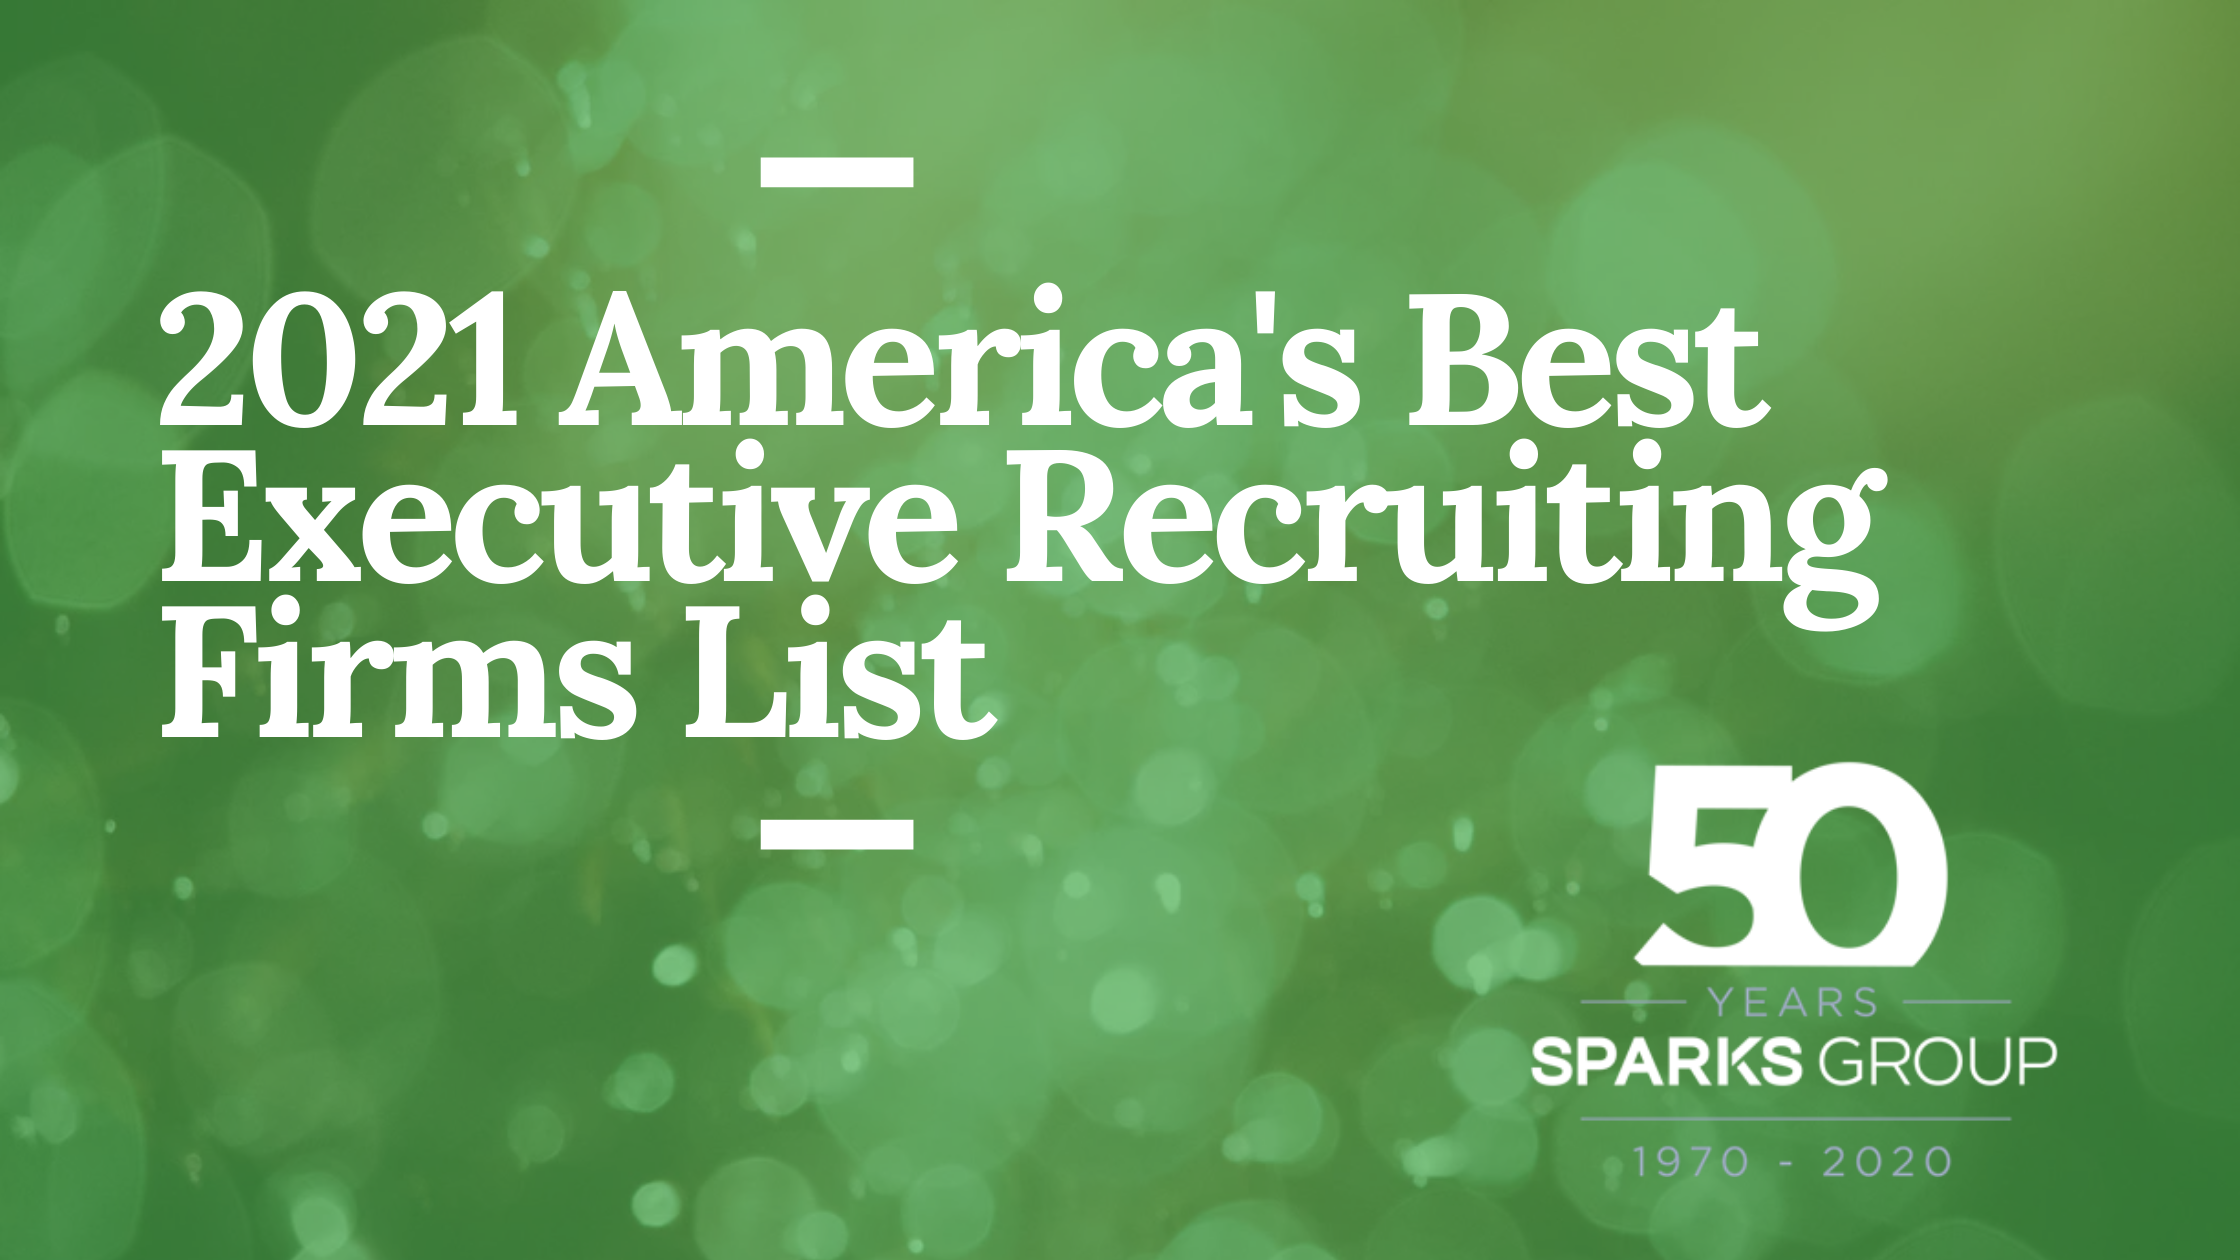 2021 Americas Best Recruiting Firms List - Sparks Group